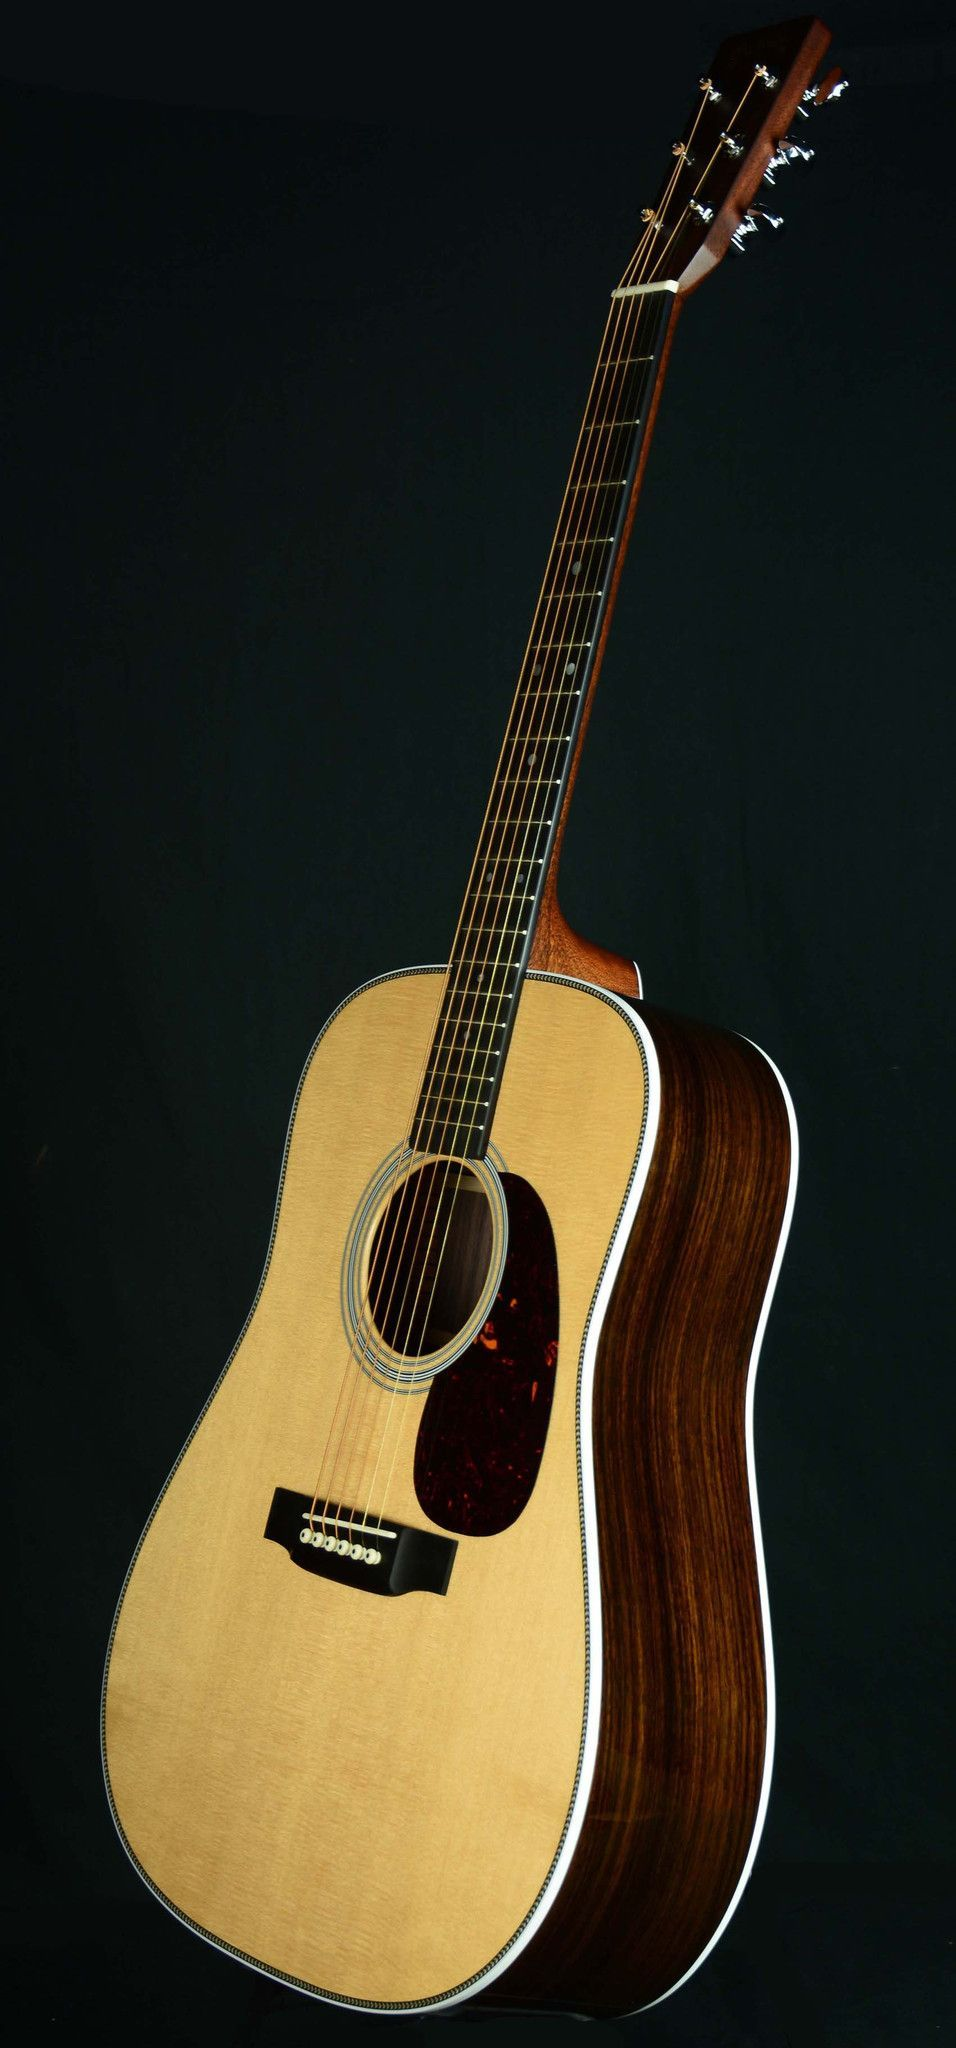 C F Martin Dh28 Dreadnought Acoustic Guitar Used Serial Number 19003 Dreadnoughts Hold The Special Place In Th Acoustic Guitar Guitar Acoustic Guitar Kits